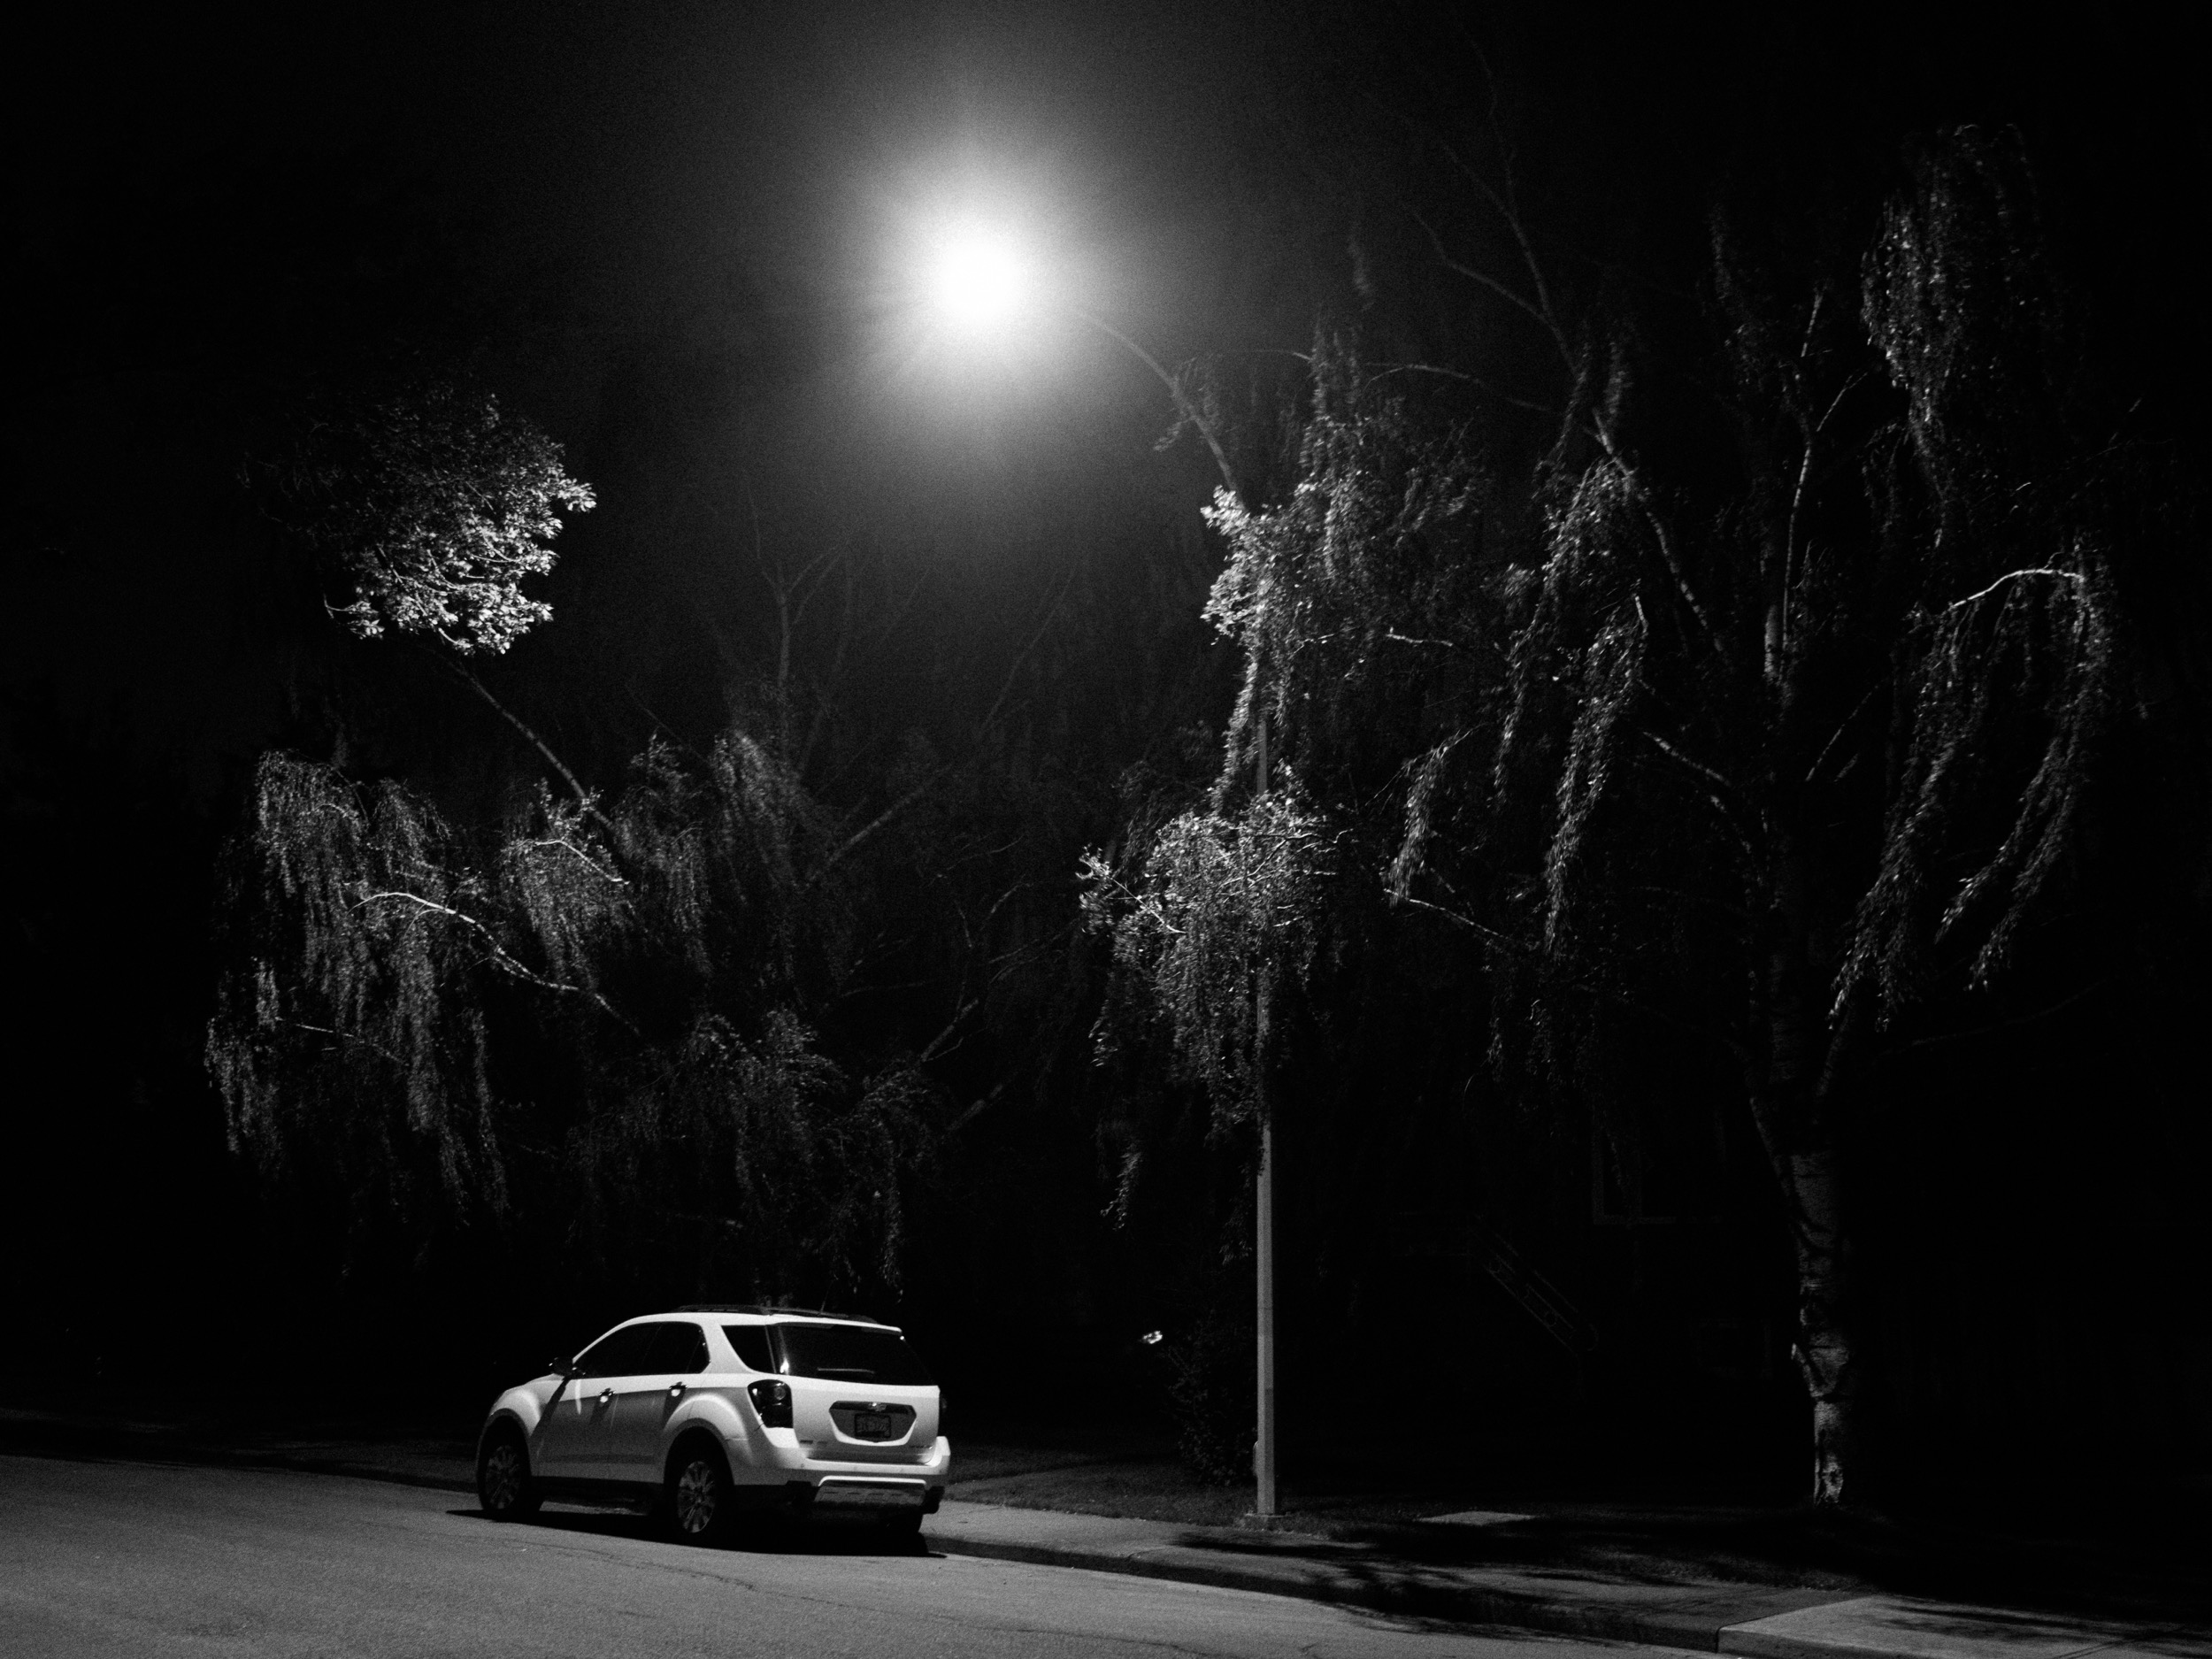 I was happy with the simplified subject matter of this photo. It's a photo of willows, a streetlight, and a car. I always wonder how photos with contemporary cars will age though. Will these cars look classic in a few decades?